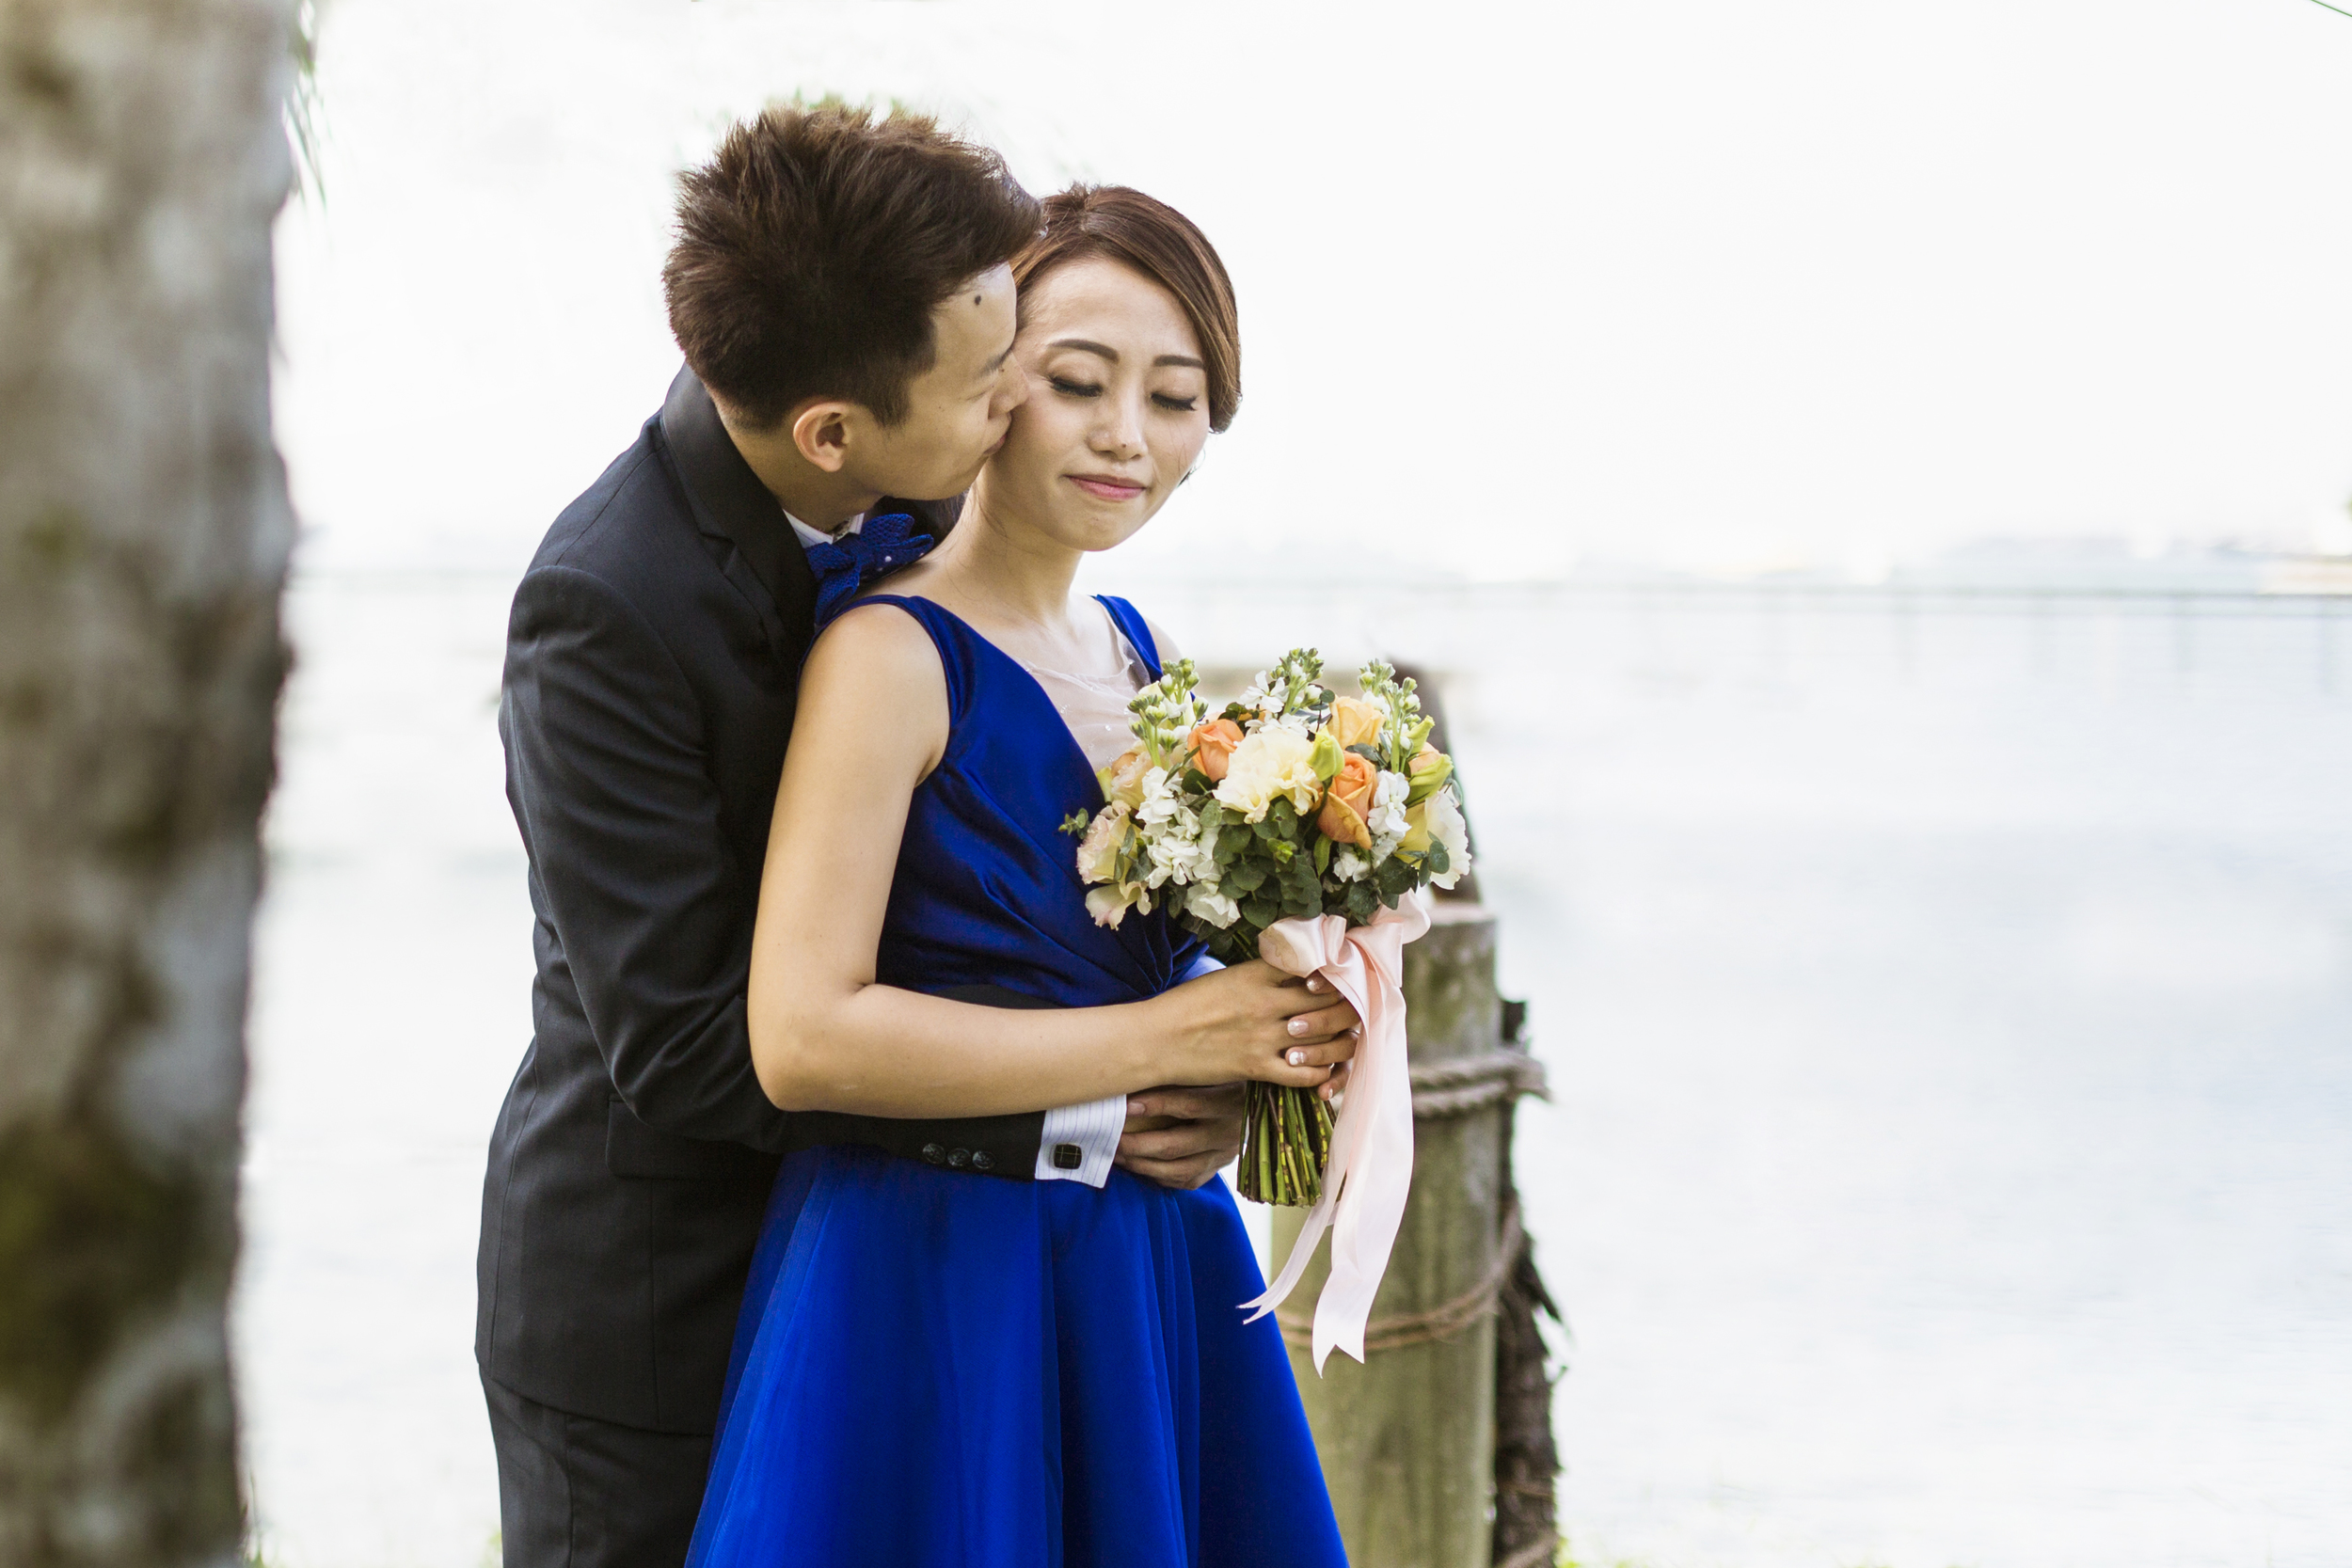 Wedding of Melvin and Lyn.Image taken at Keppel Club